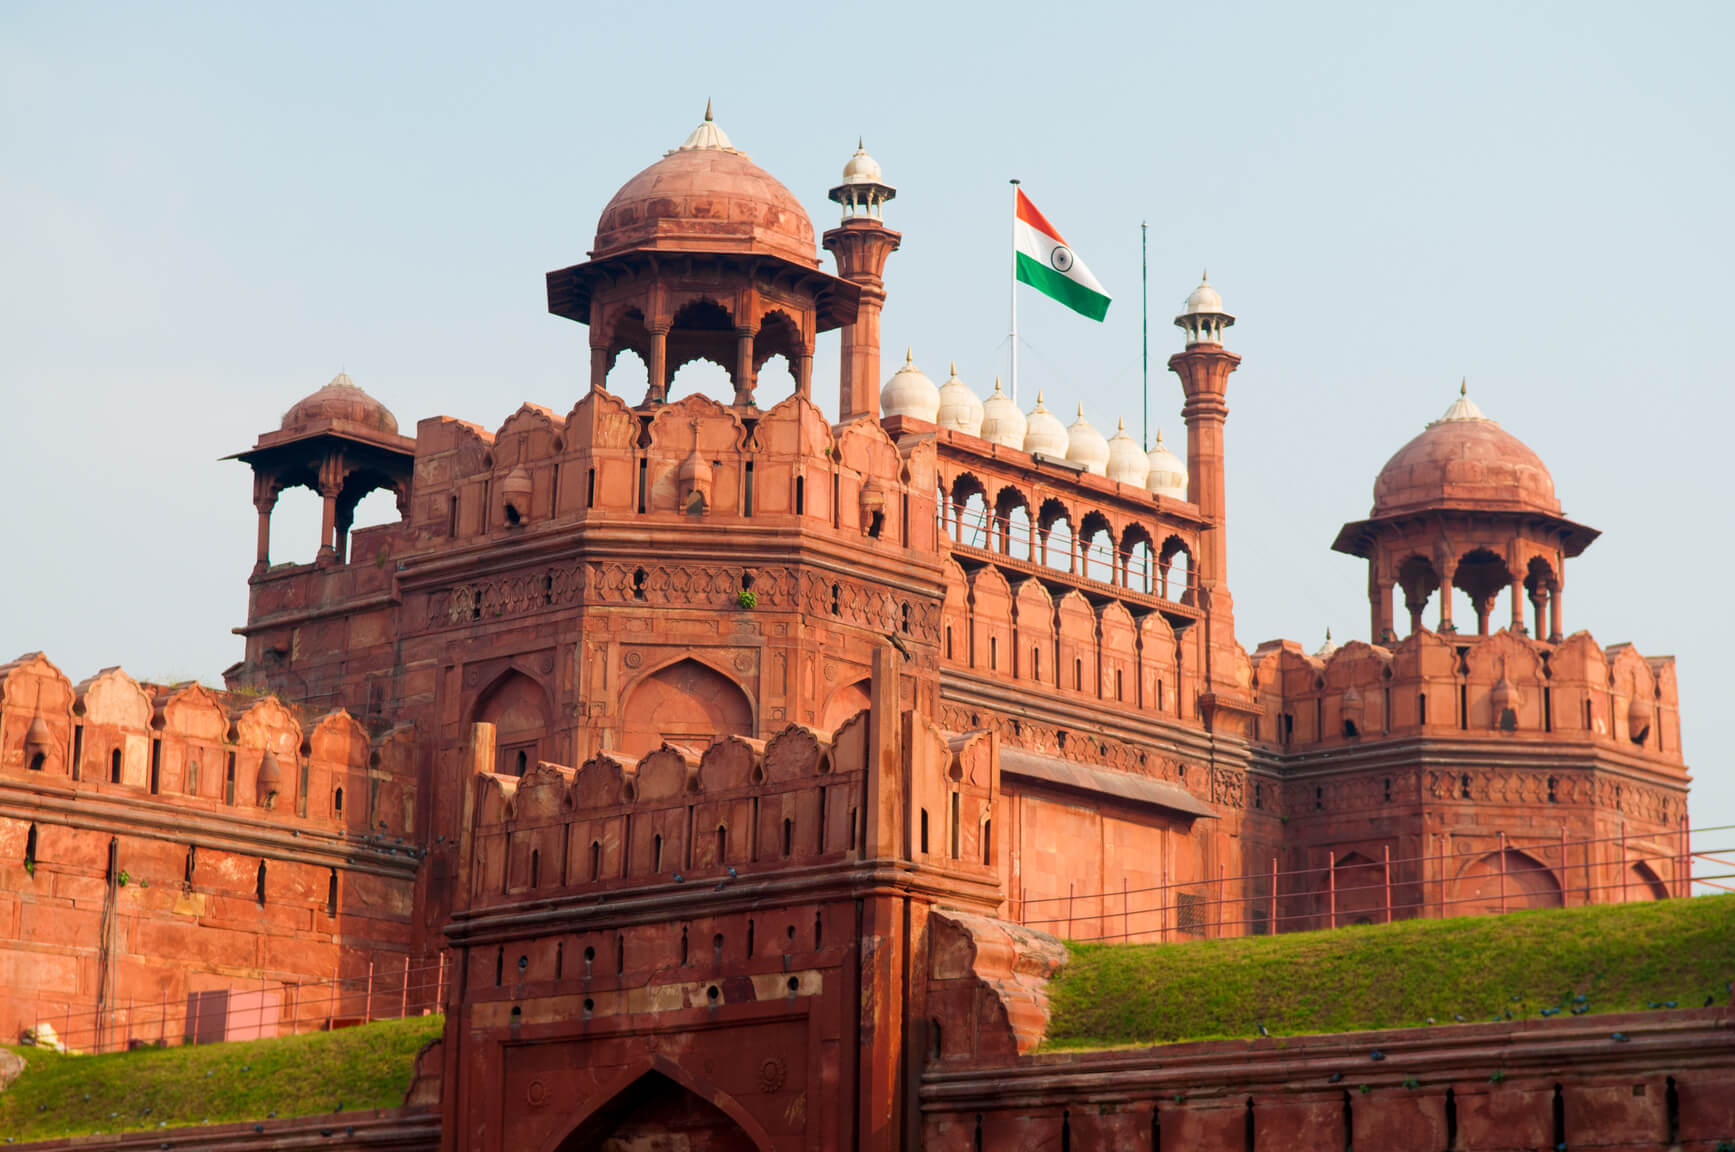 Milan, Italy to Delhi, India for only €357 roundtrip (Jan-Apr dates)